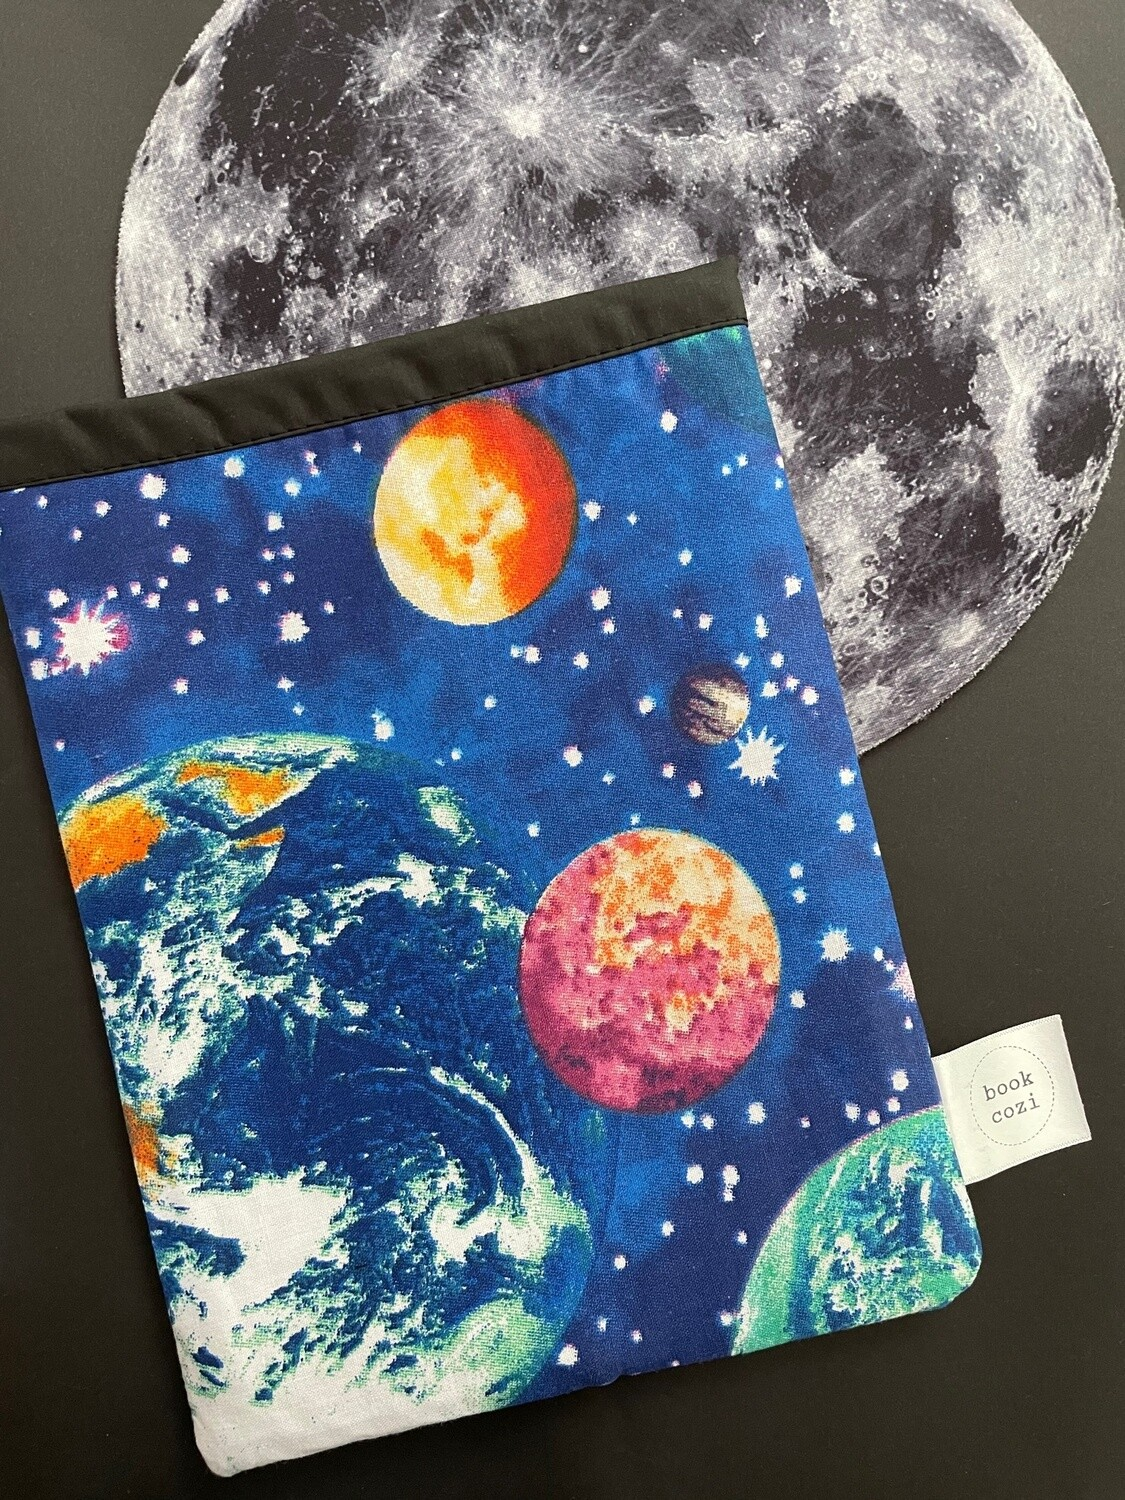 Out of this world - Grey Journal Design